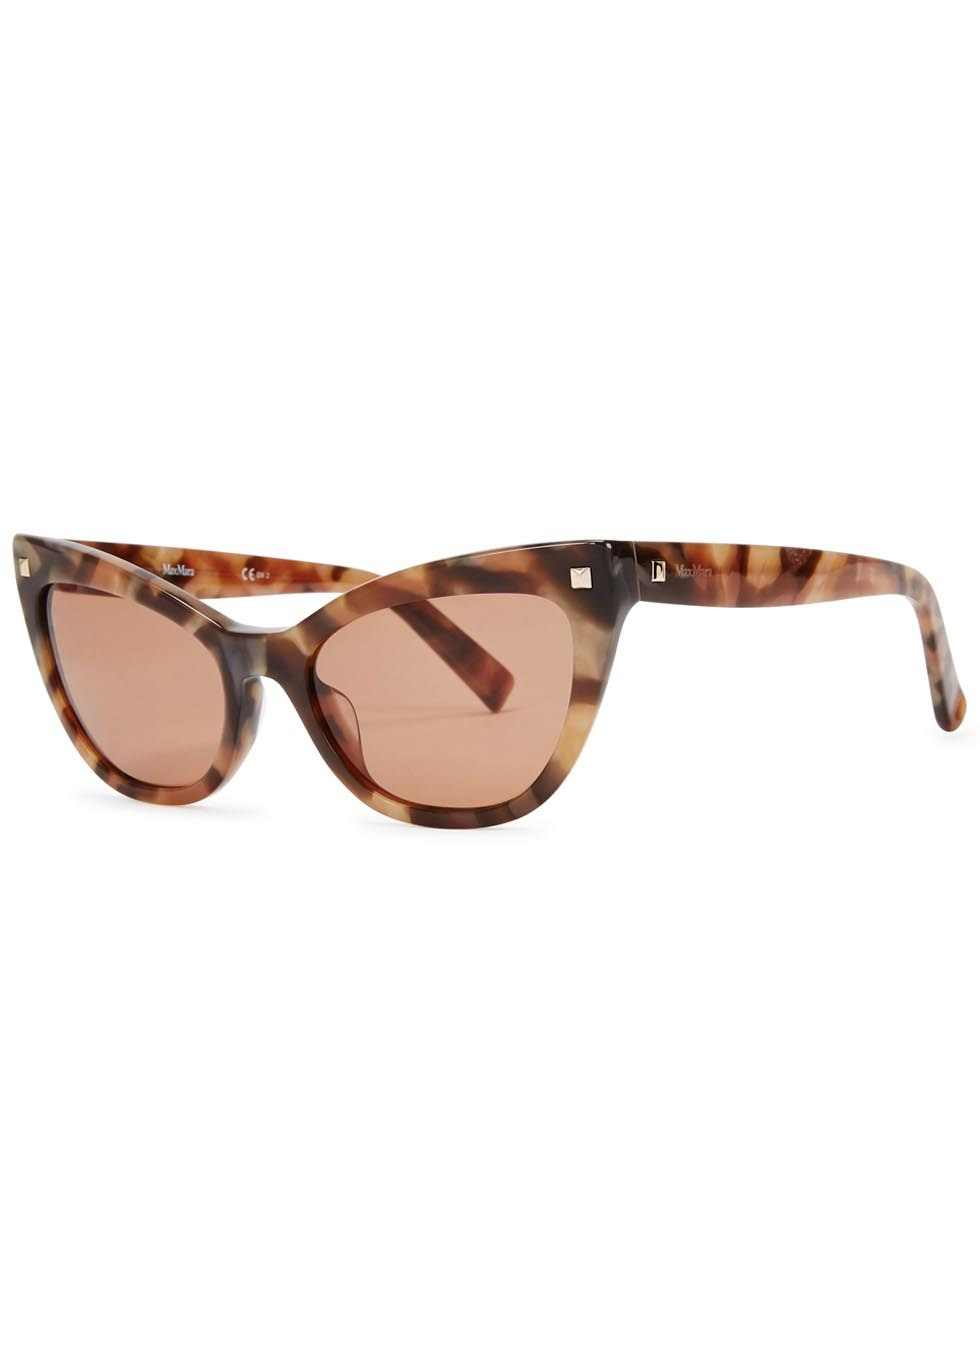 Tortoiseshell Cat Eye Sunglasses - predominant colour: tan; occasions: casual, holiday; style: cateye; size: standard; material: plastic/rubber; pattern: tortoiseshell; finish: plain; season: a/w 2015; wardrobe: highlight